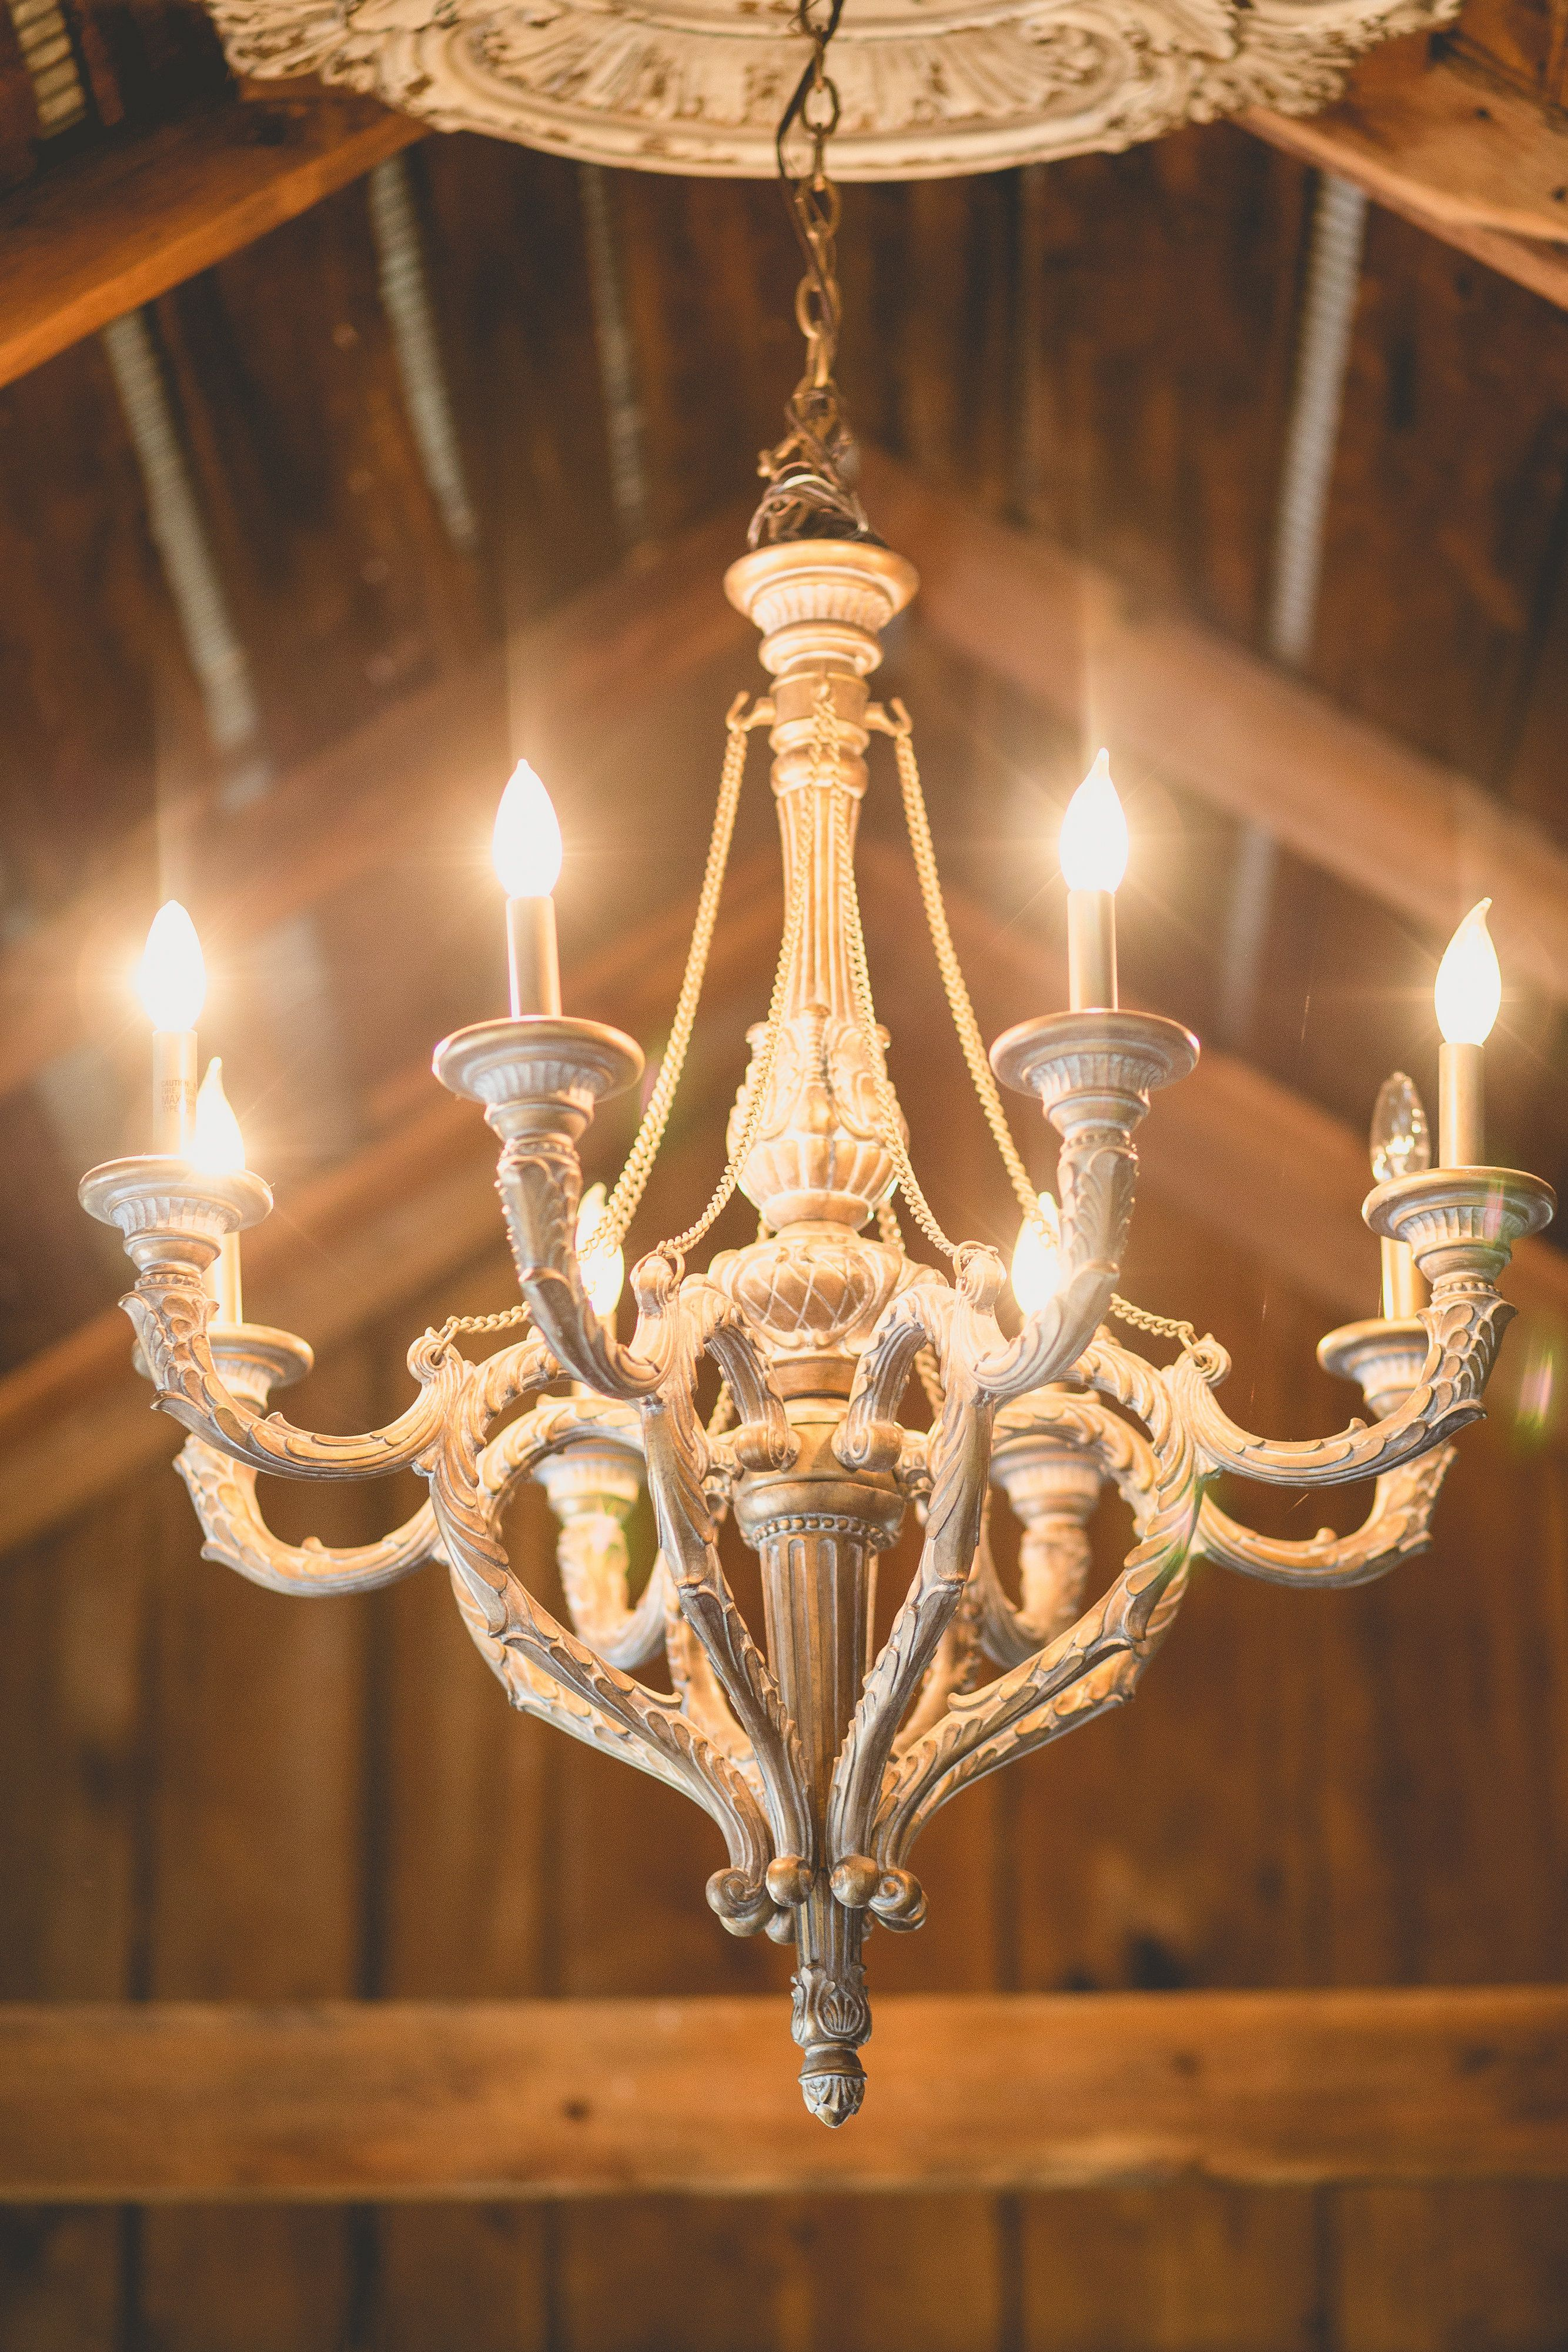 Chandelier in the bridal suite at the milestone barn photo